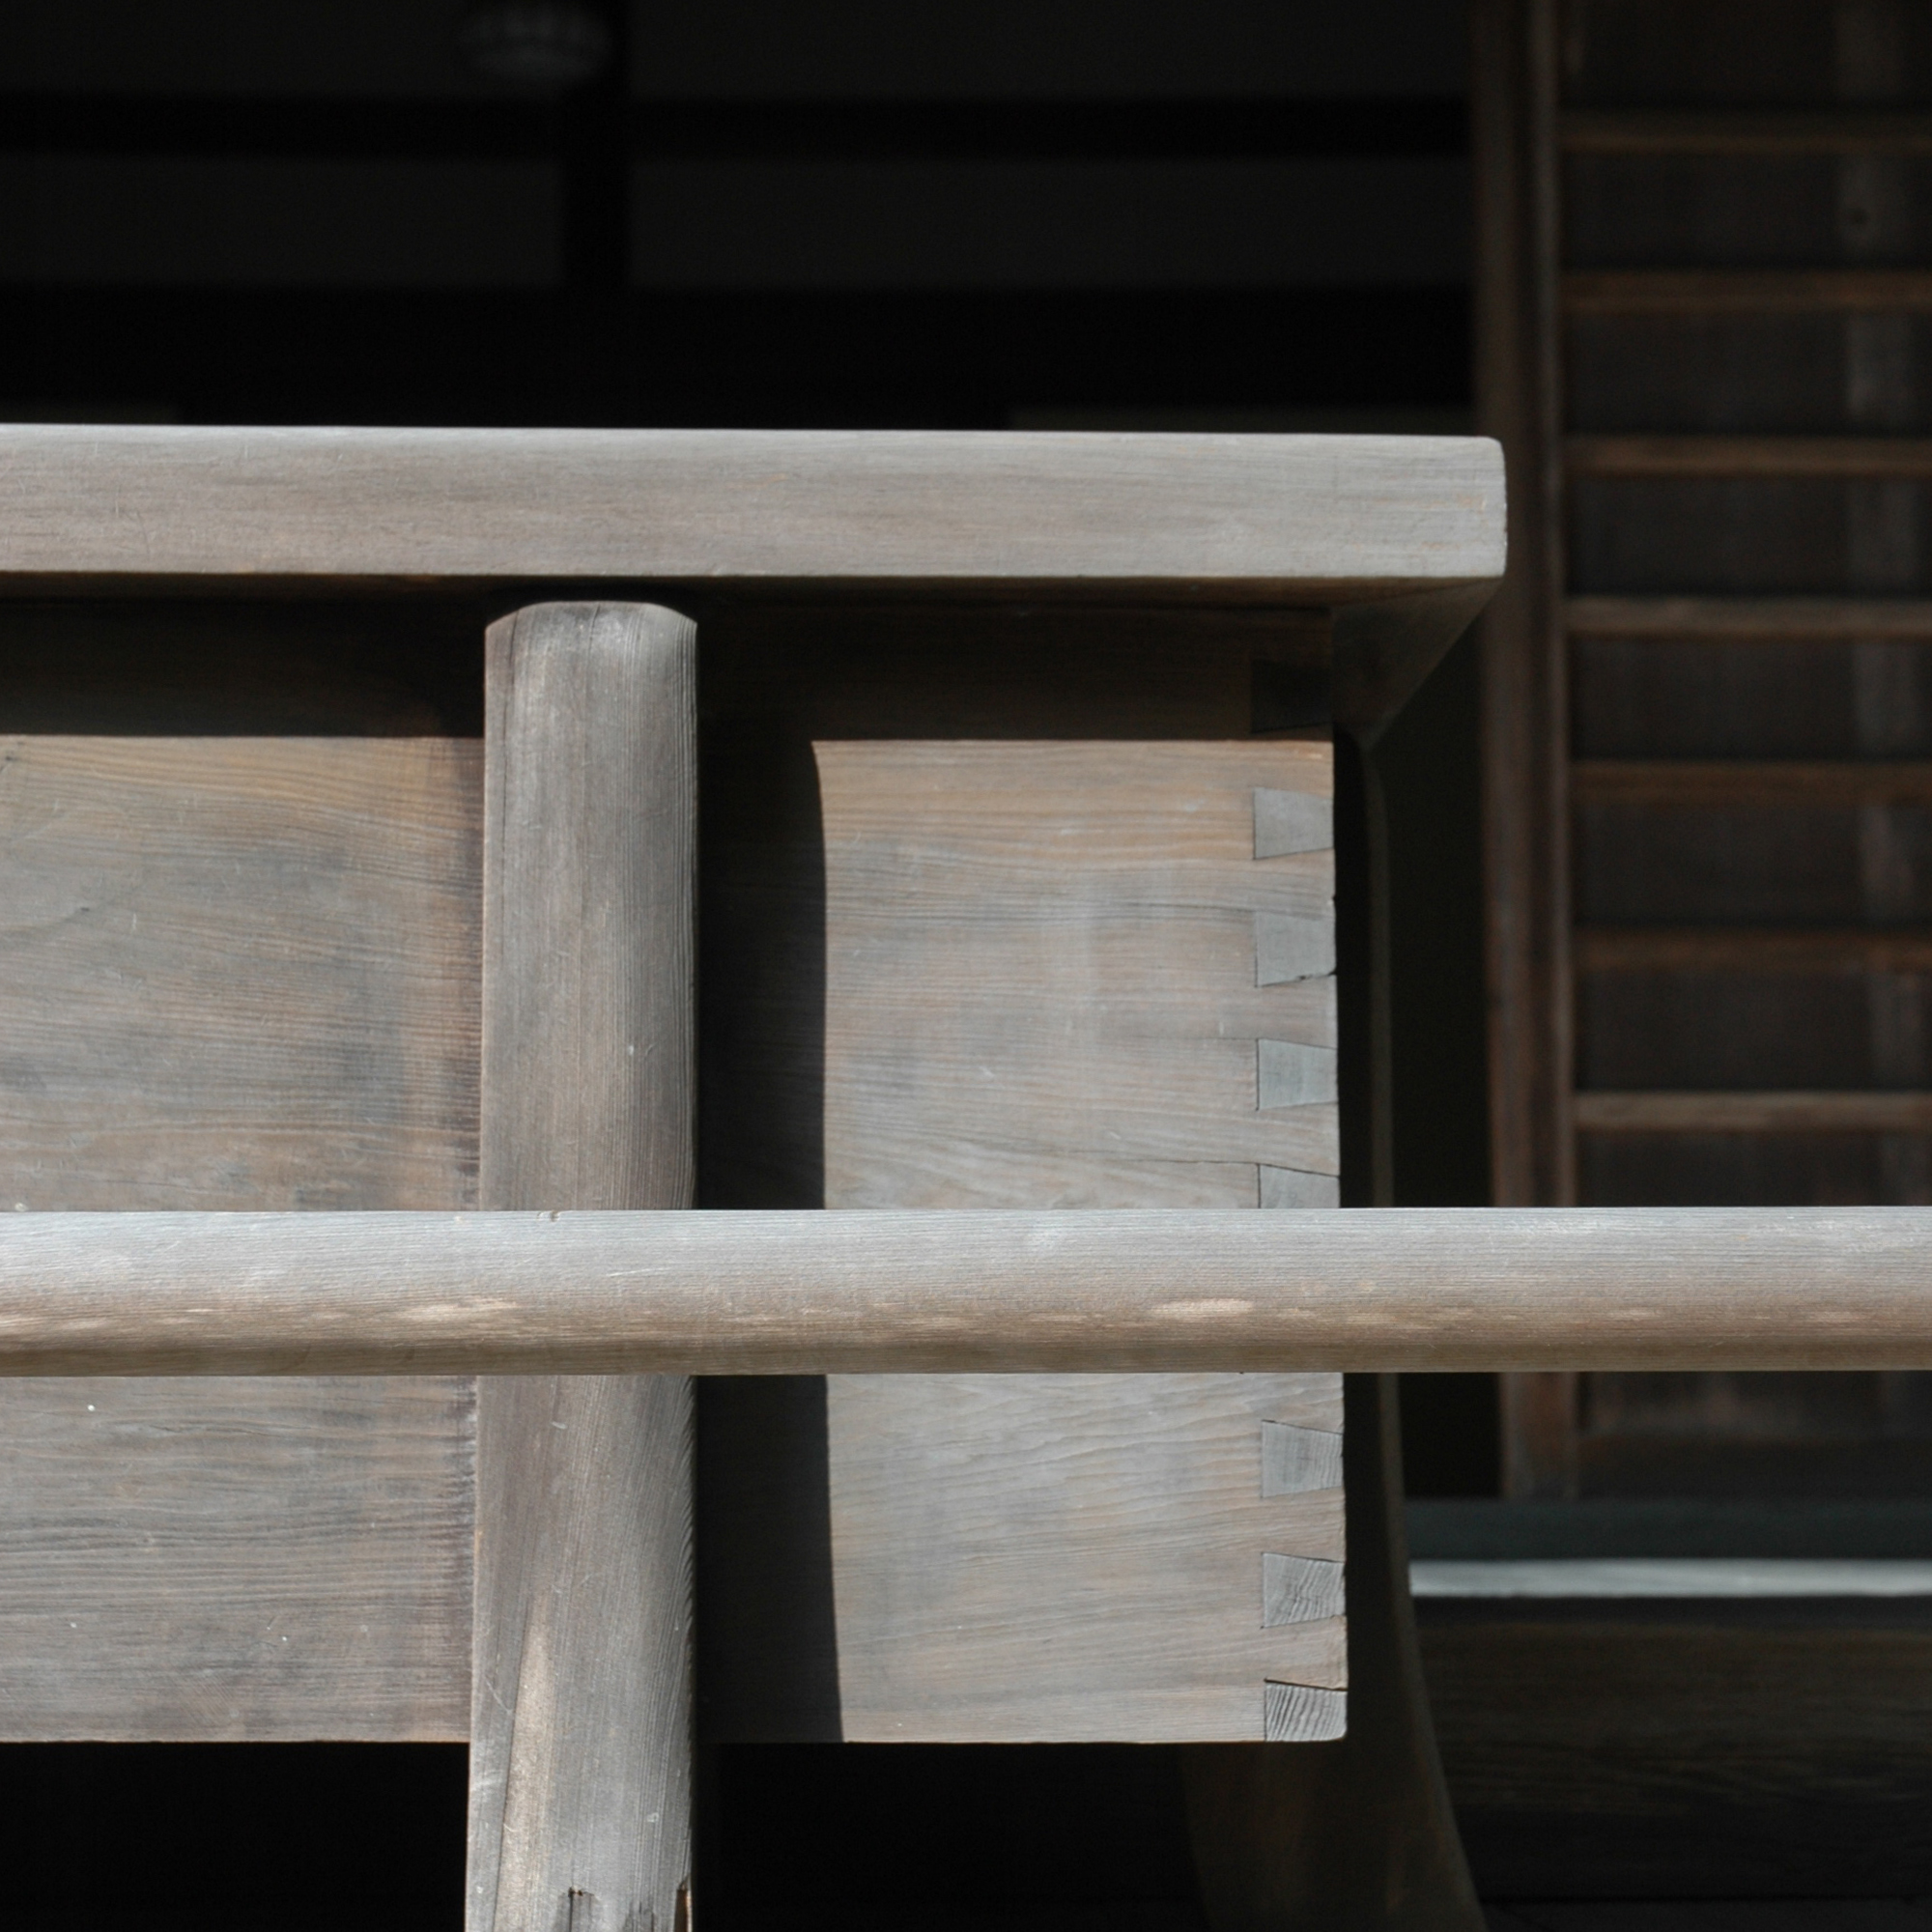 assemblage — composition and craftsmanship. the organization of disparate elements and the elegance of joinery.